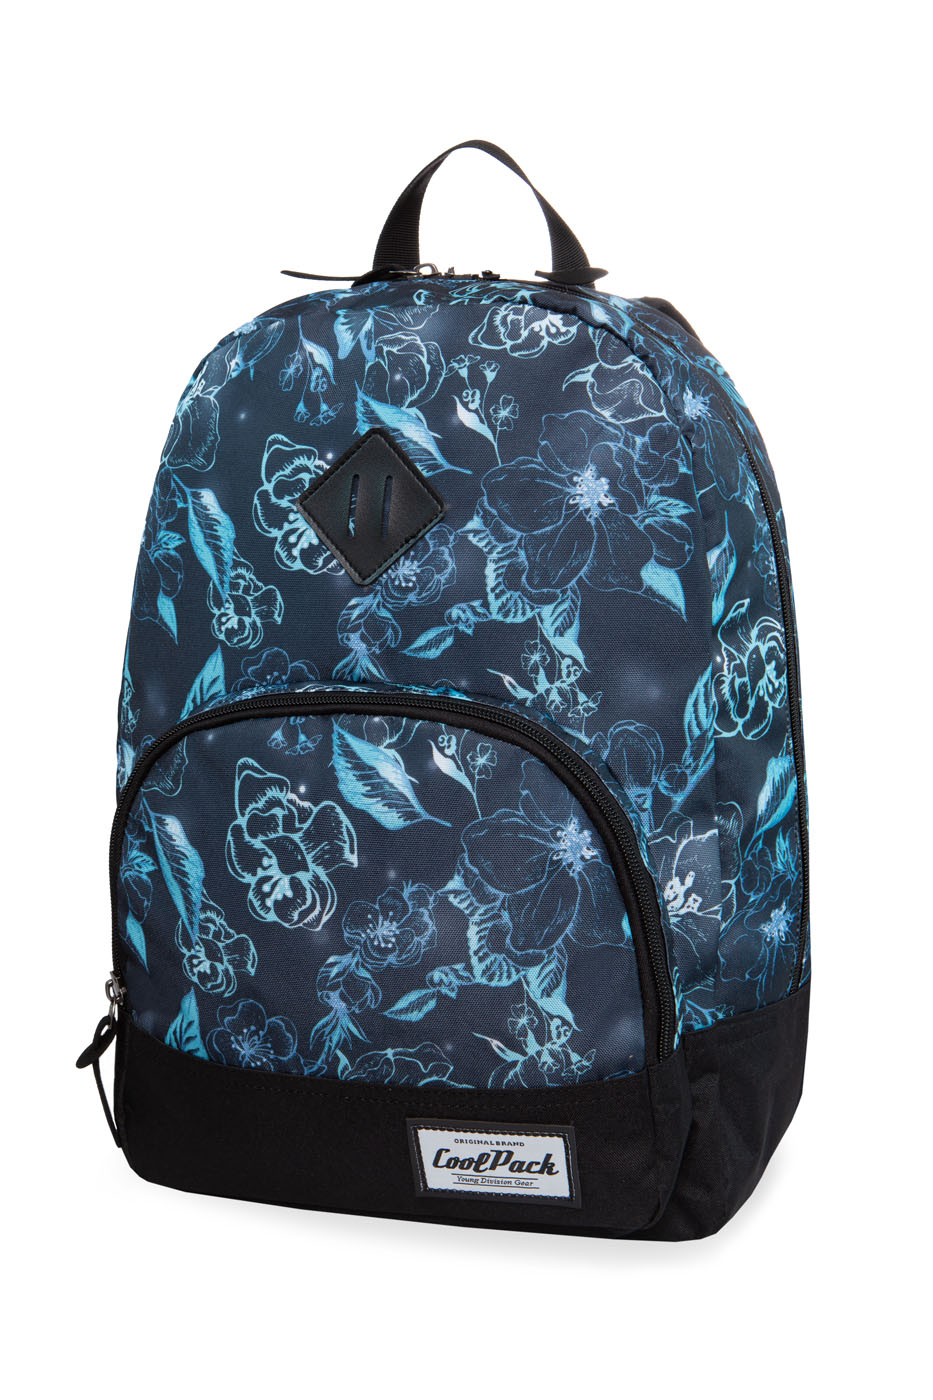 Coolpack - classic - youth backpack - underwater dream